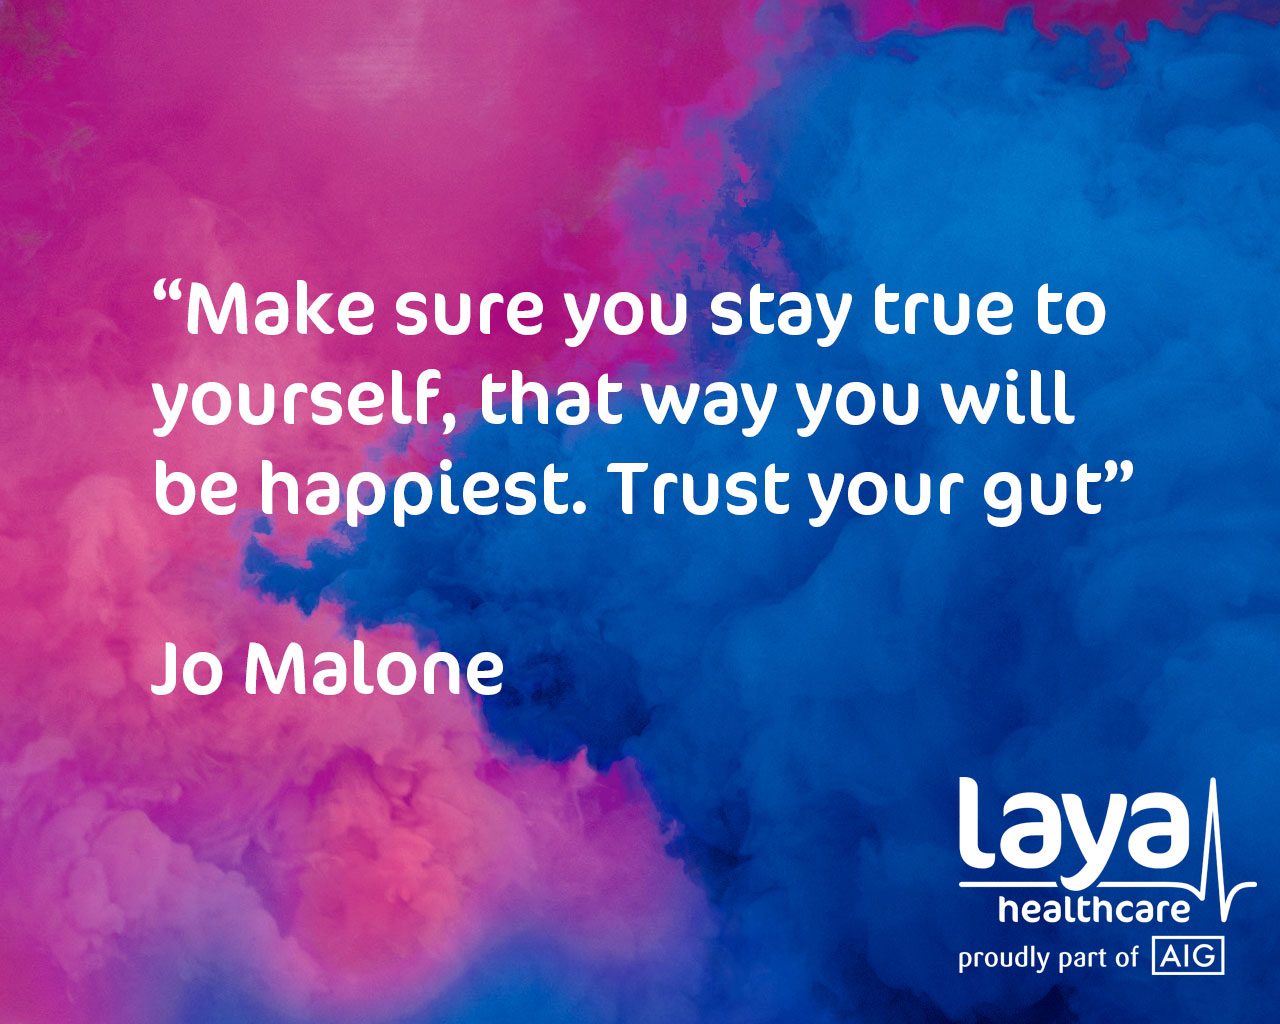 quote from jo malone saying to trust your gut